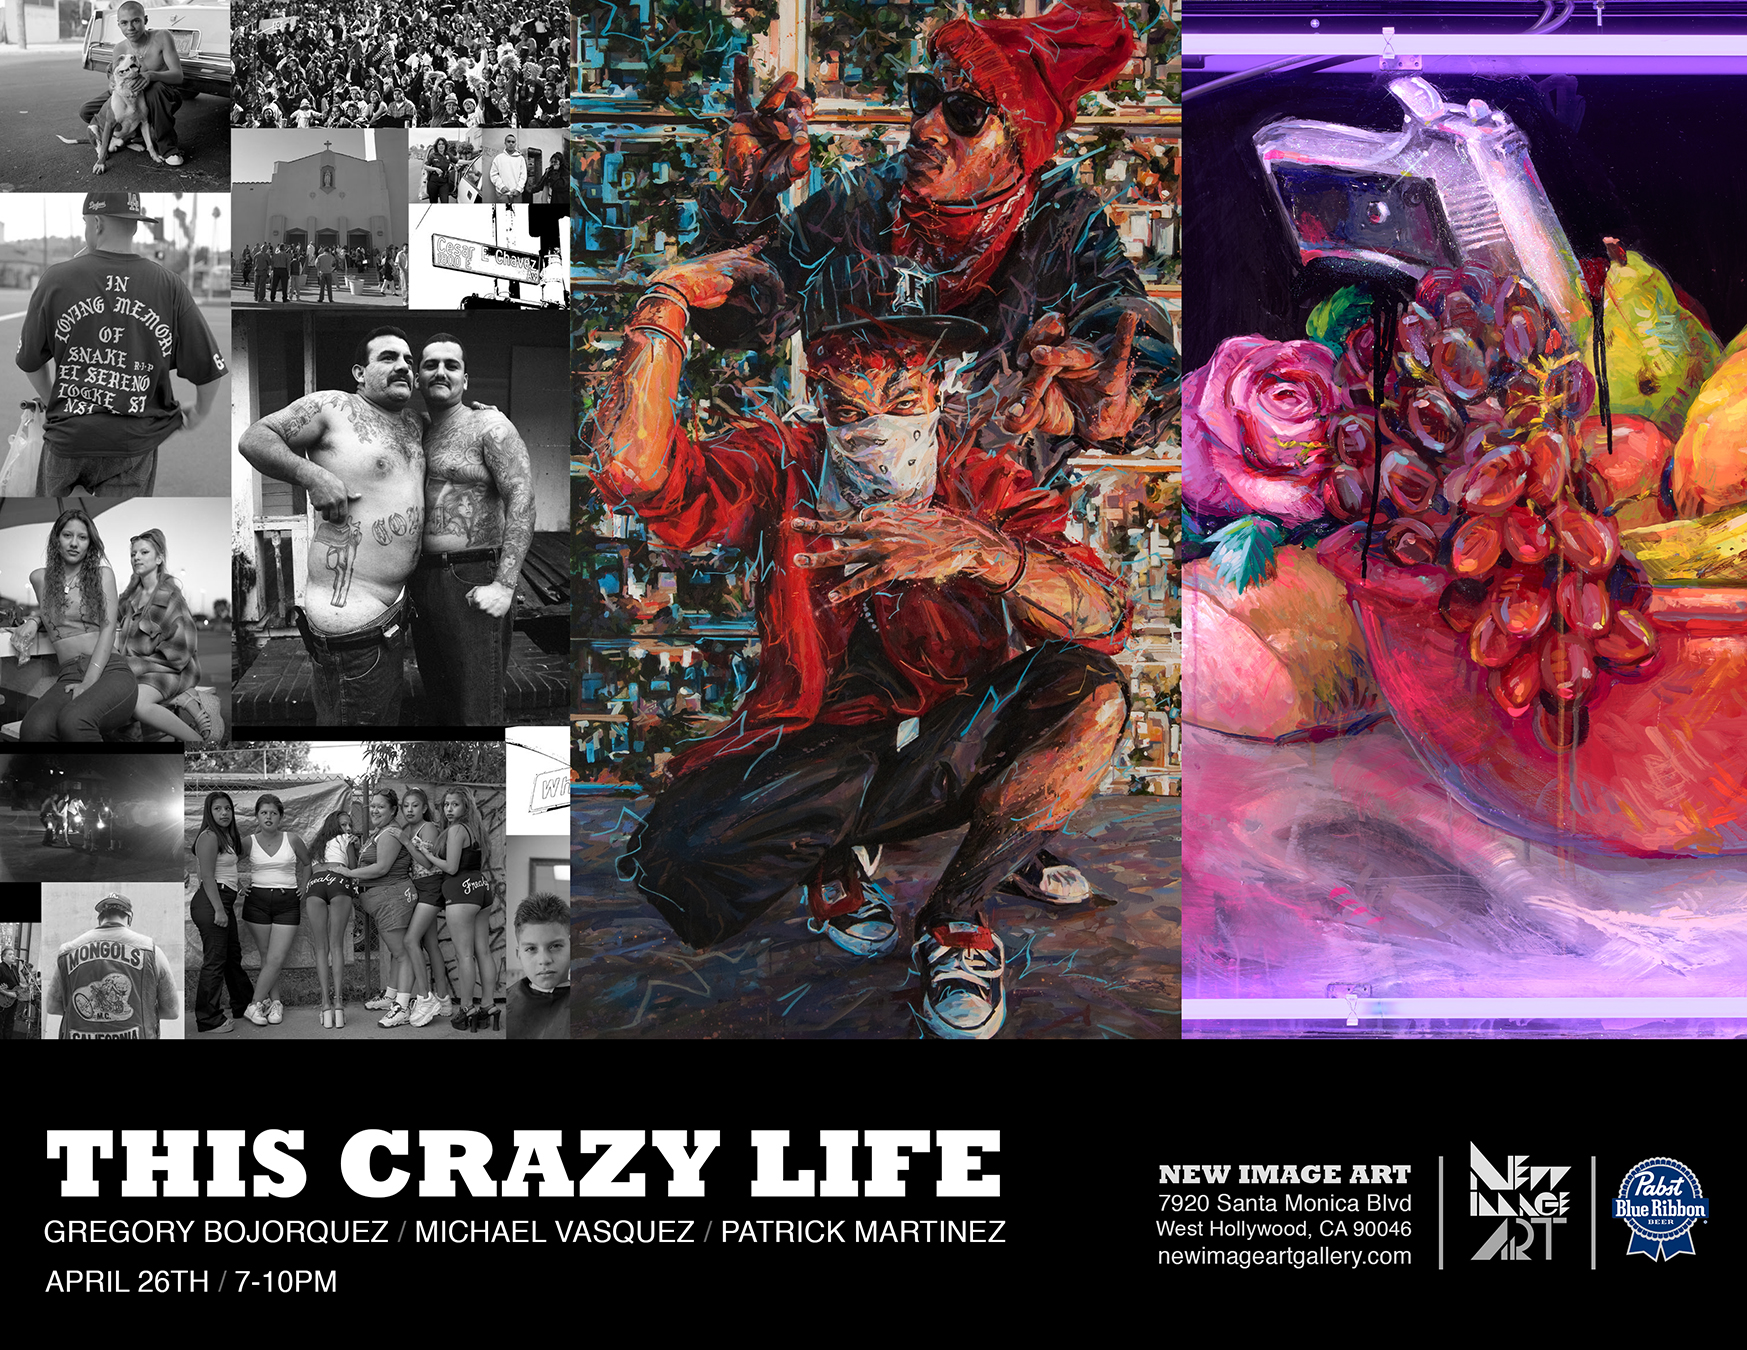 GROUP SHOW - THIS CRAZY LIFE